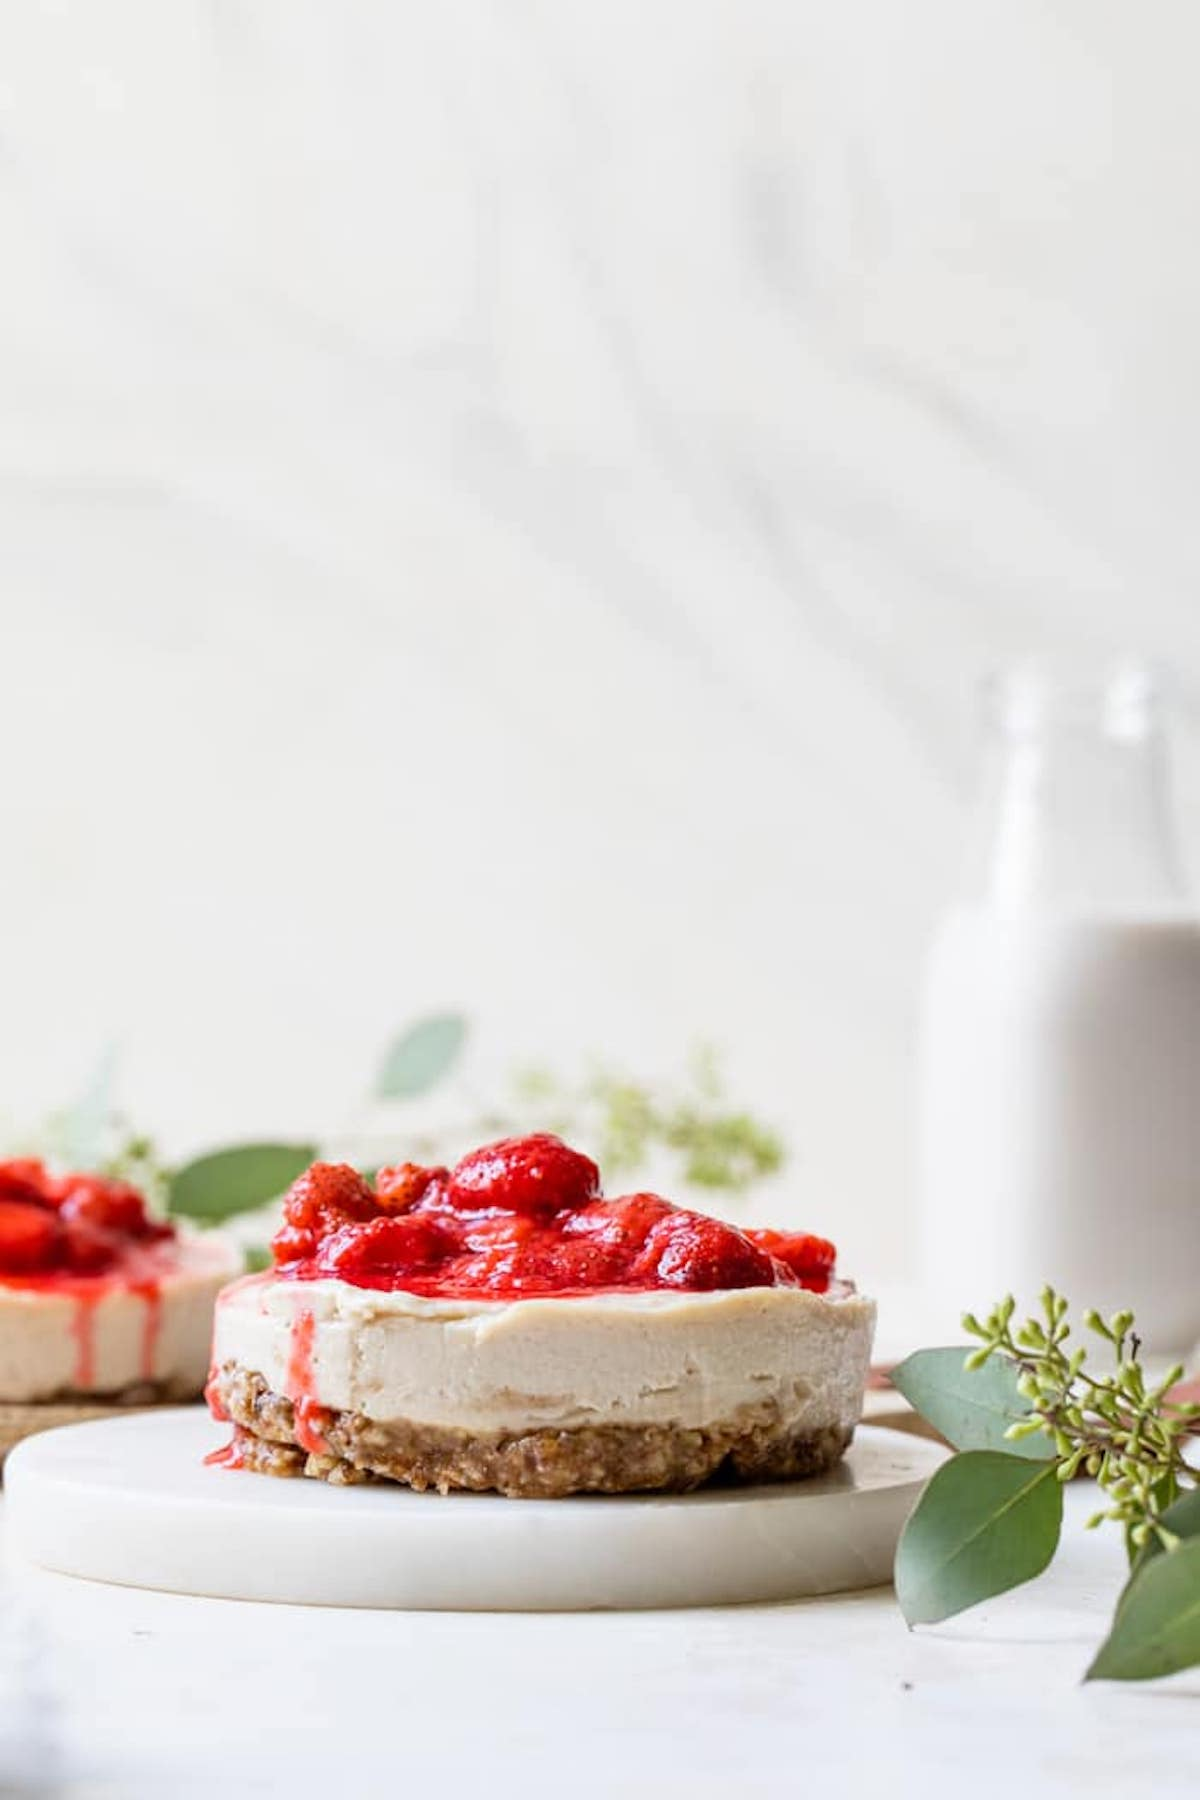 cashew cheesecake topped with strawberries